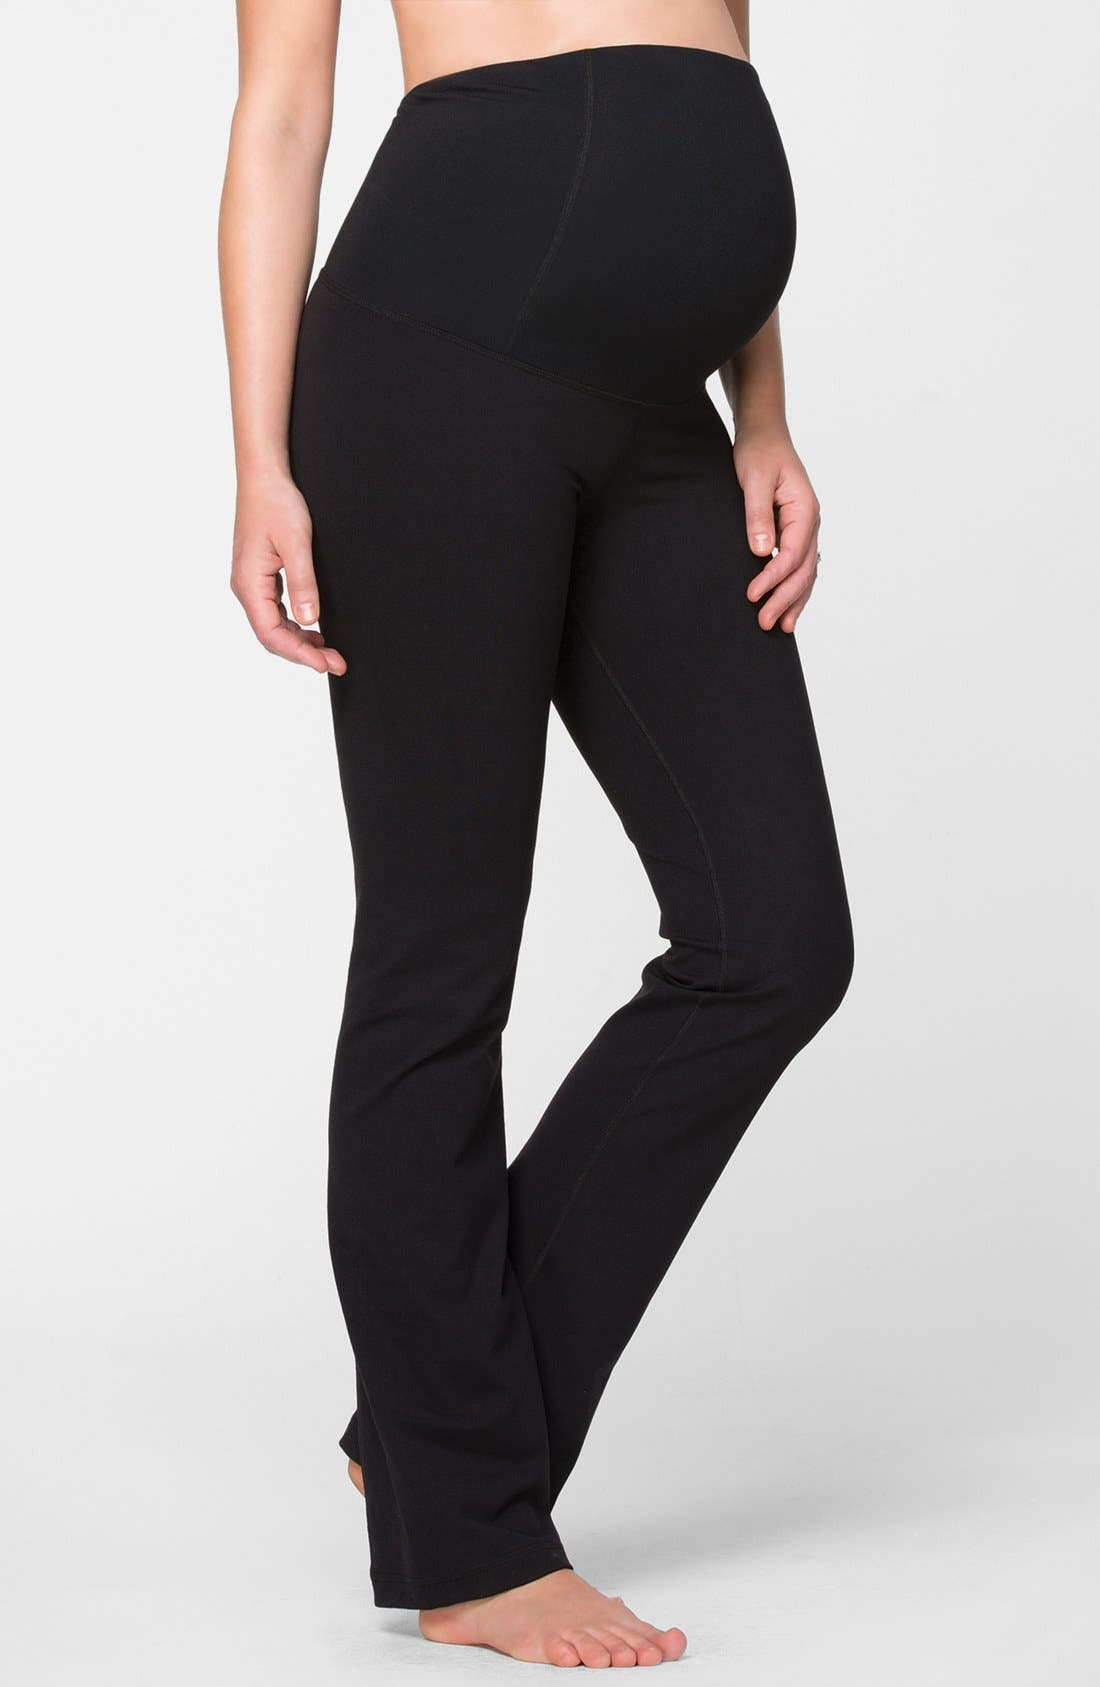 Women's Ingrid & Isabel Active Maternity Pants With Crossover Panel